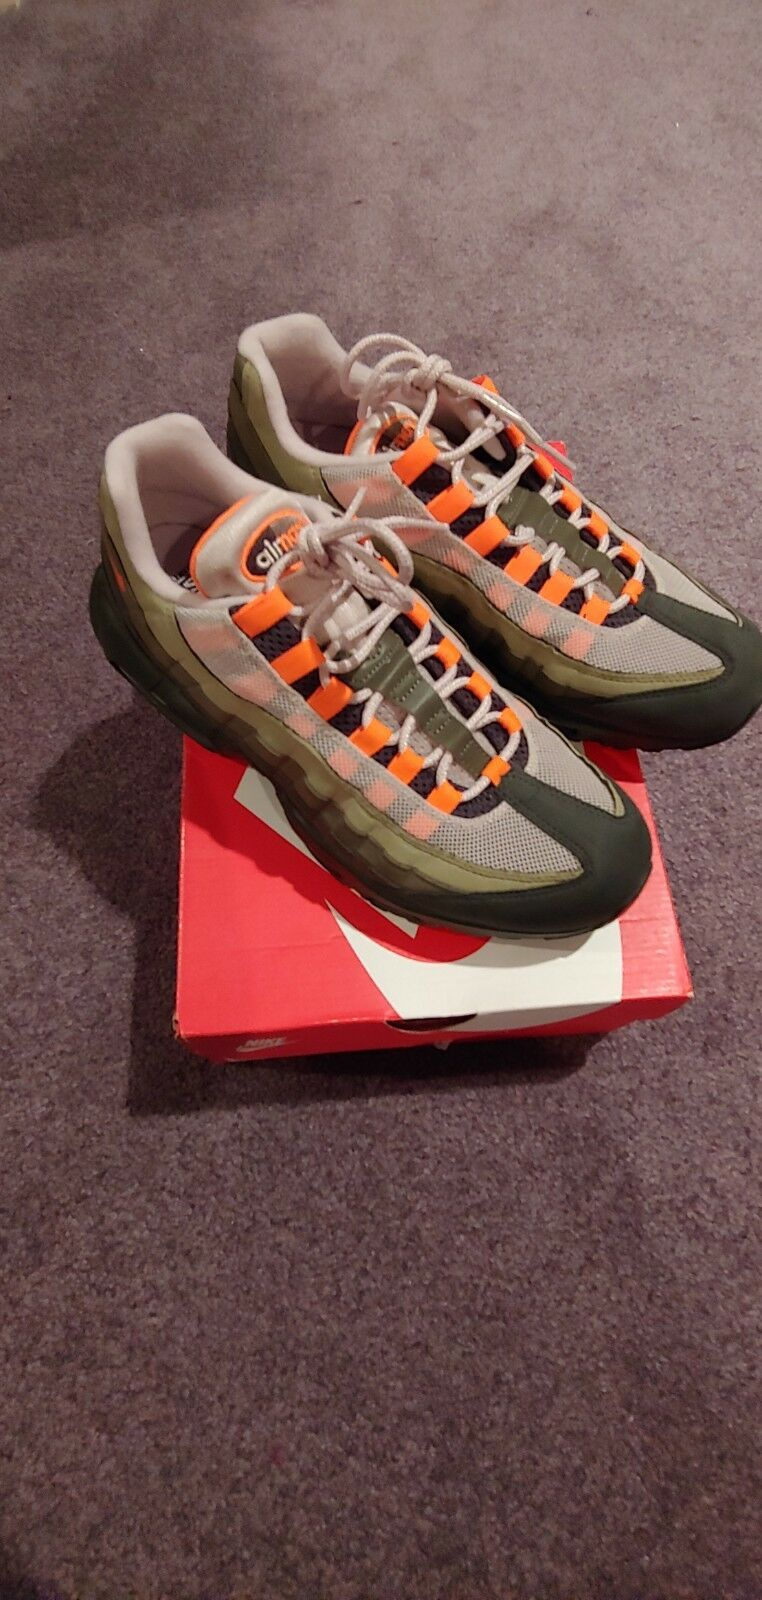 NIKE AIR MAX 95 OG String Total Orange Neutral Olive Undefeated Mens AT2865-2